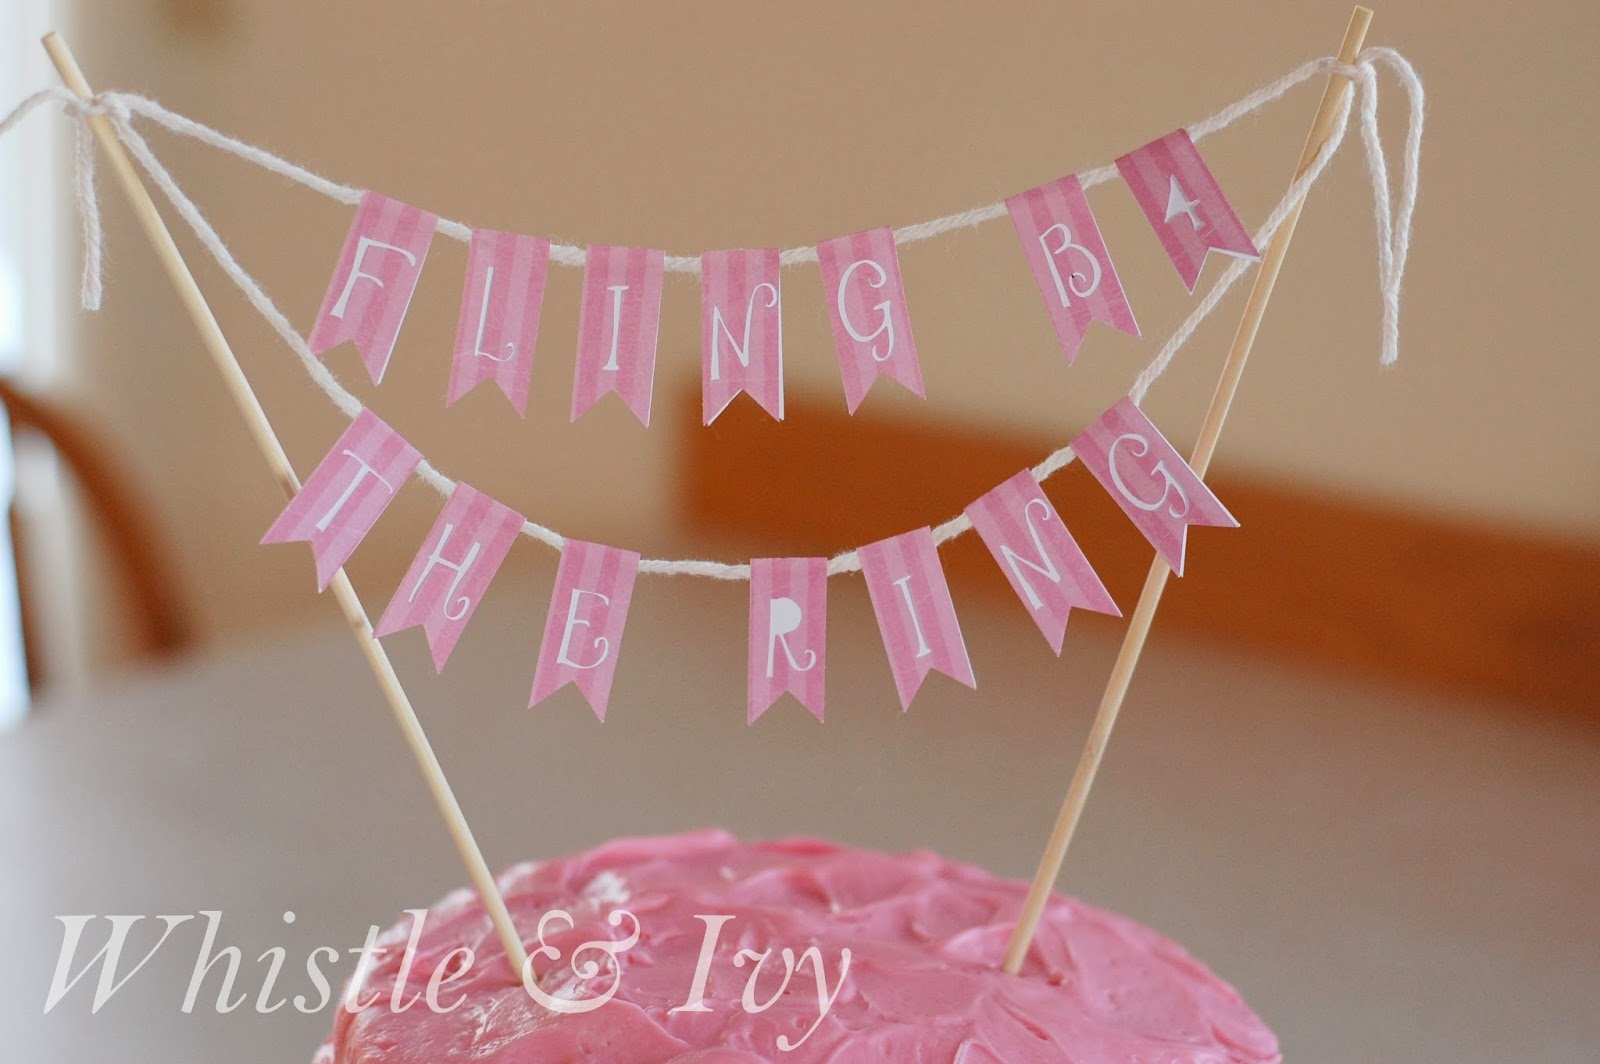 hombre cake easy cake topper banner with silhouette fling before the ring